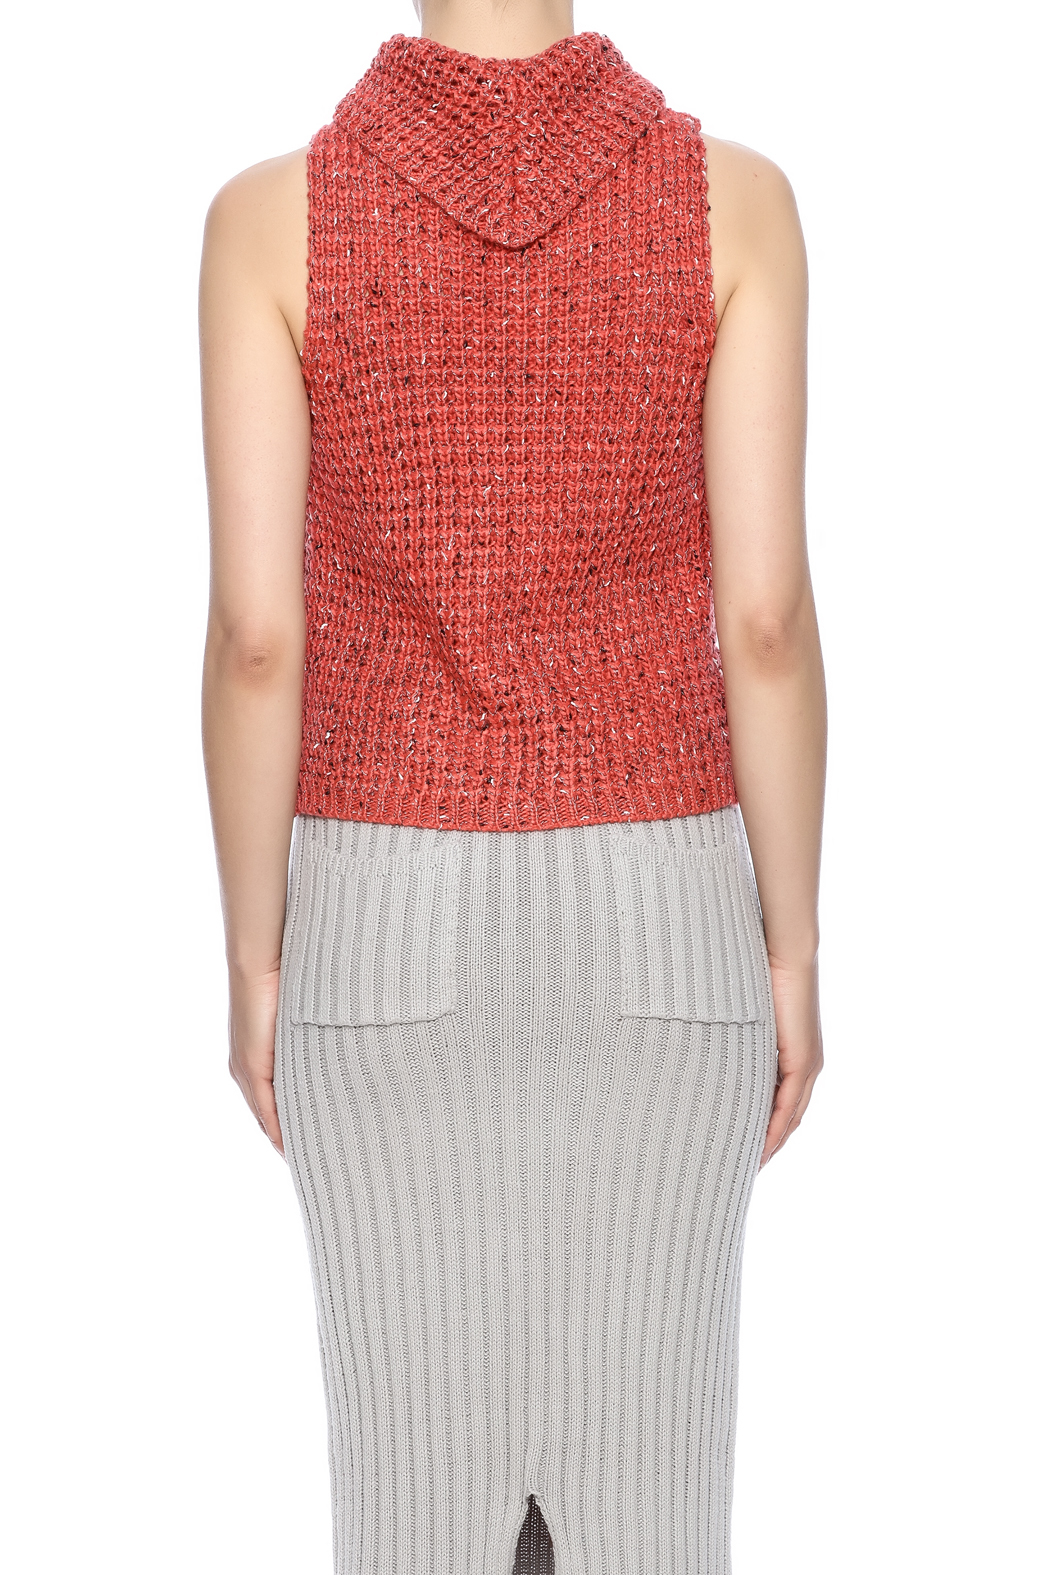 ce49d32083d39 Bishop + Young Sleeveless Cowl Sweater from New Jersey by JAX ...